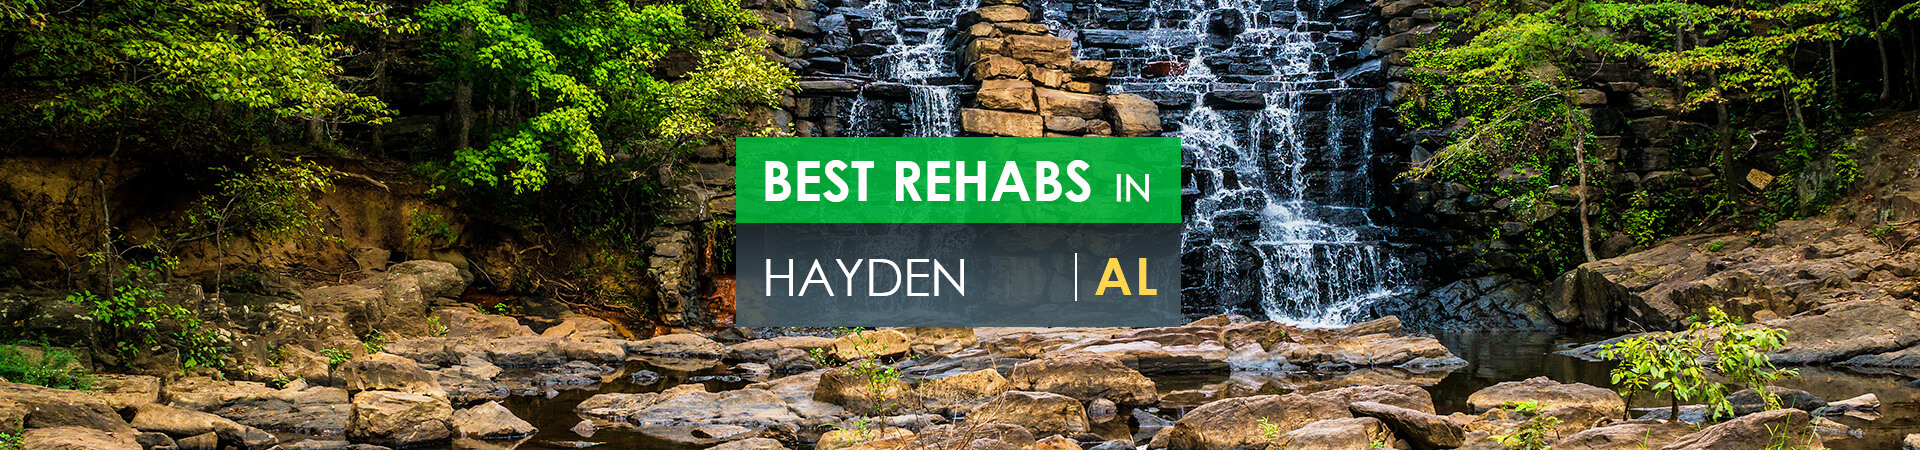 Best rehabs in Hayden, AL